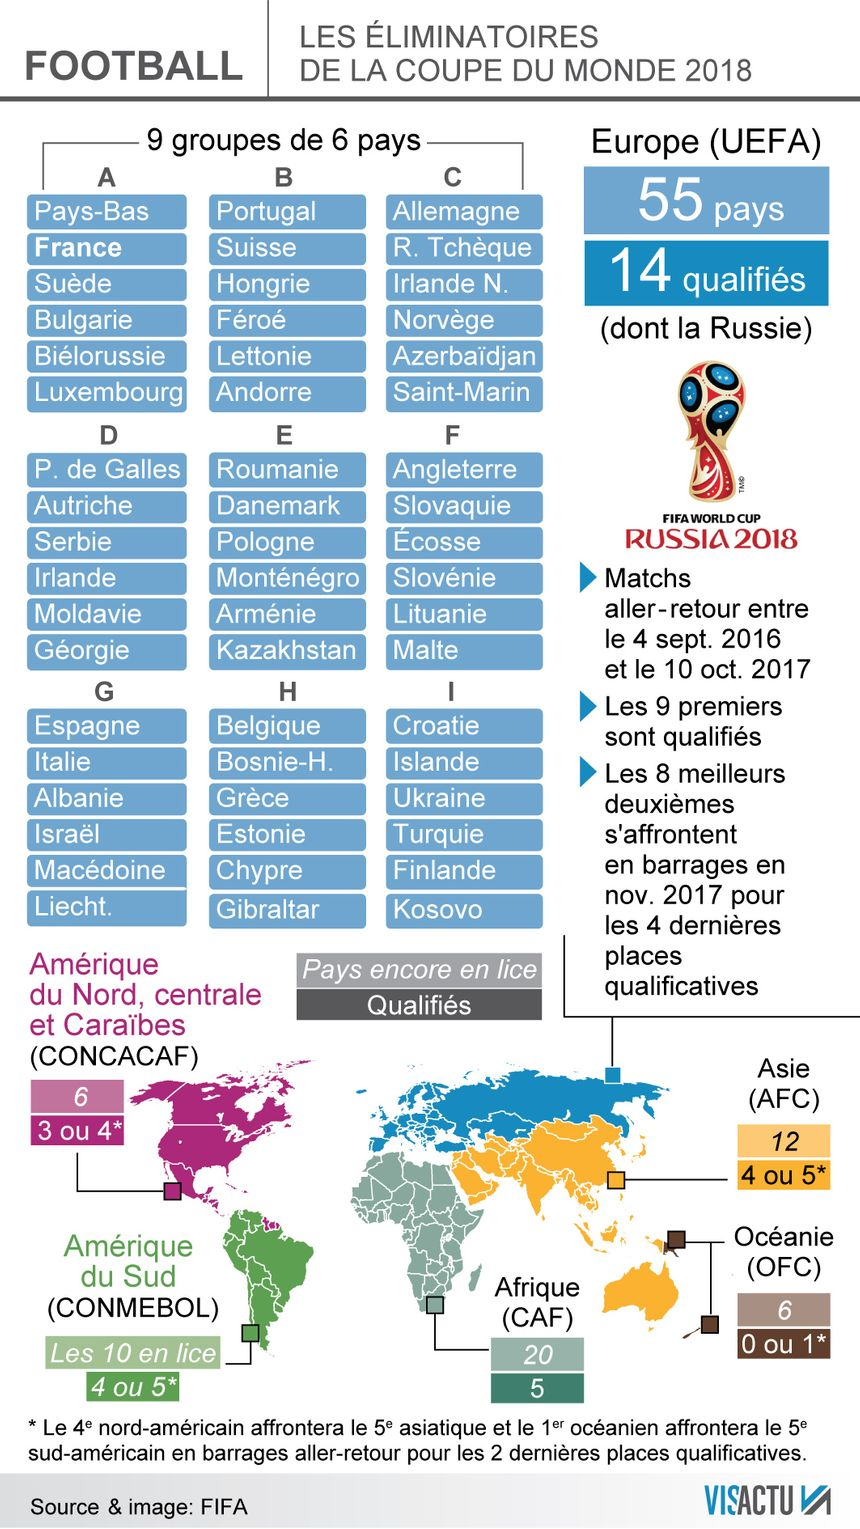 Calendrier Des Match De La Coupe Du Monde.Mondial 2018 Le Calendrier Des Matches De Qualifications